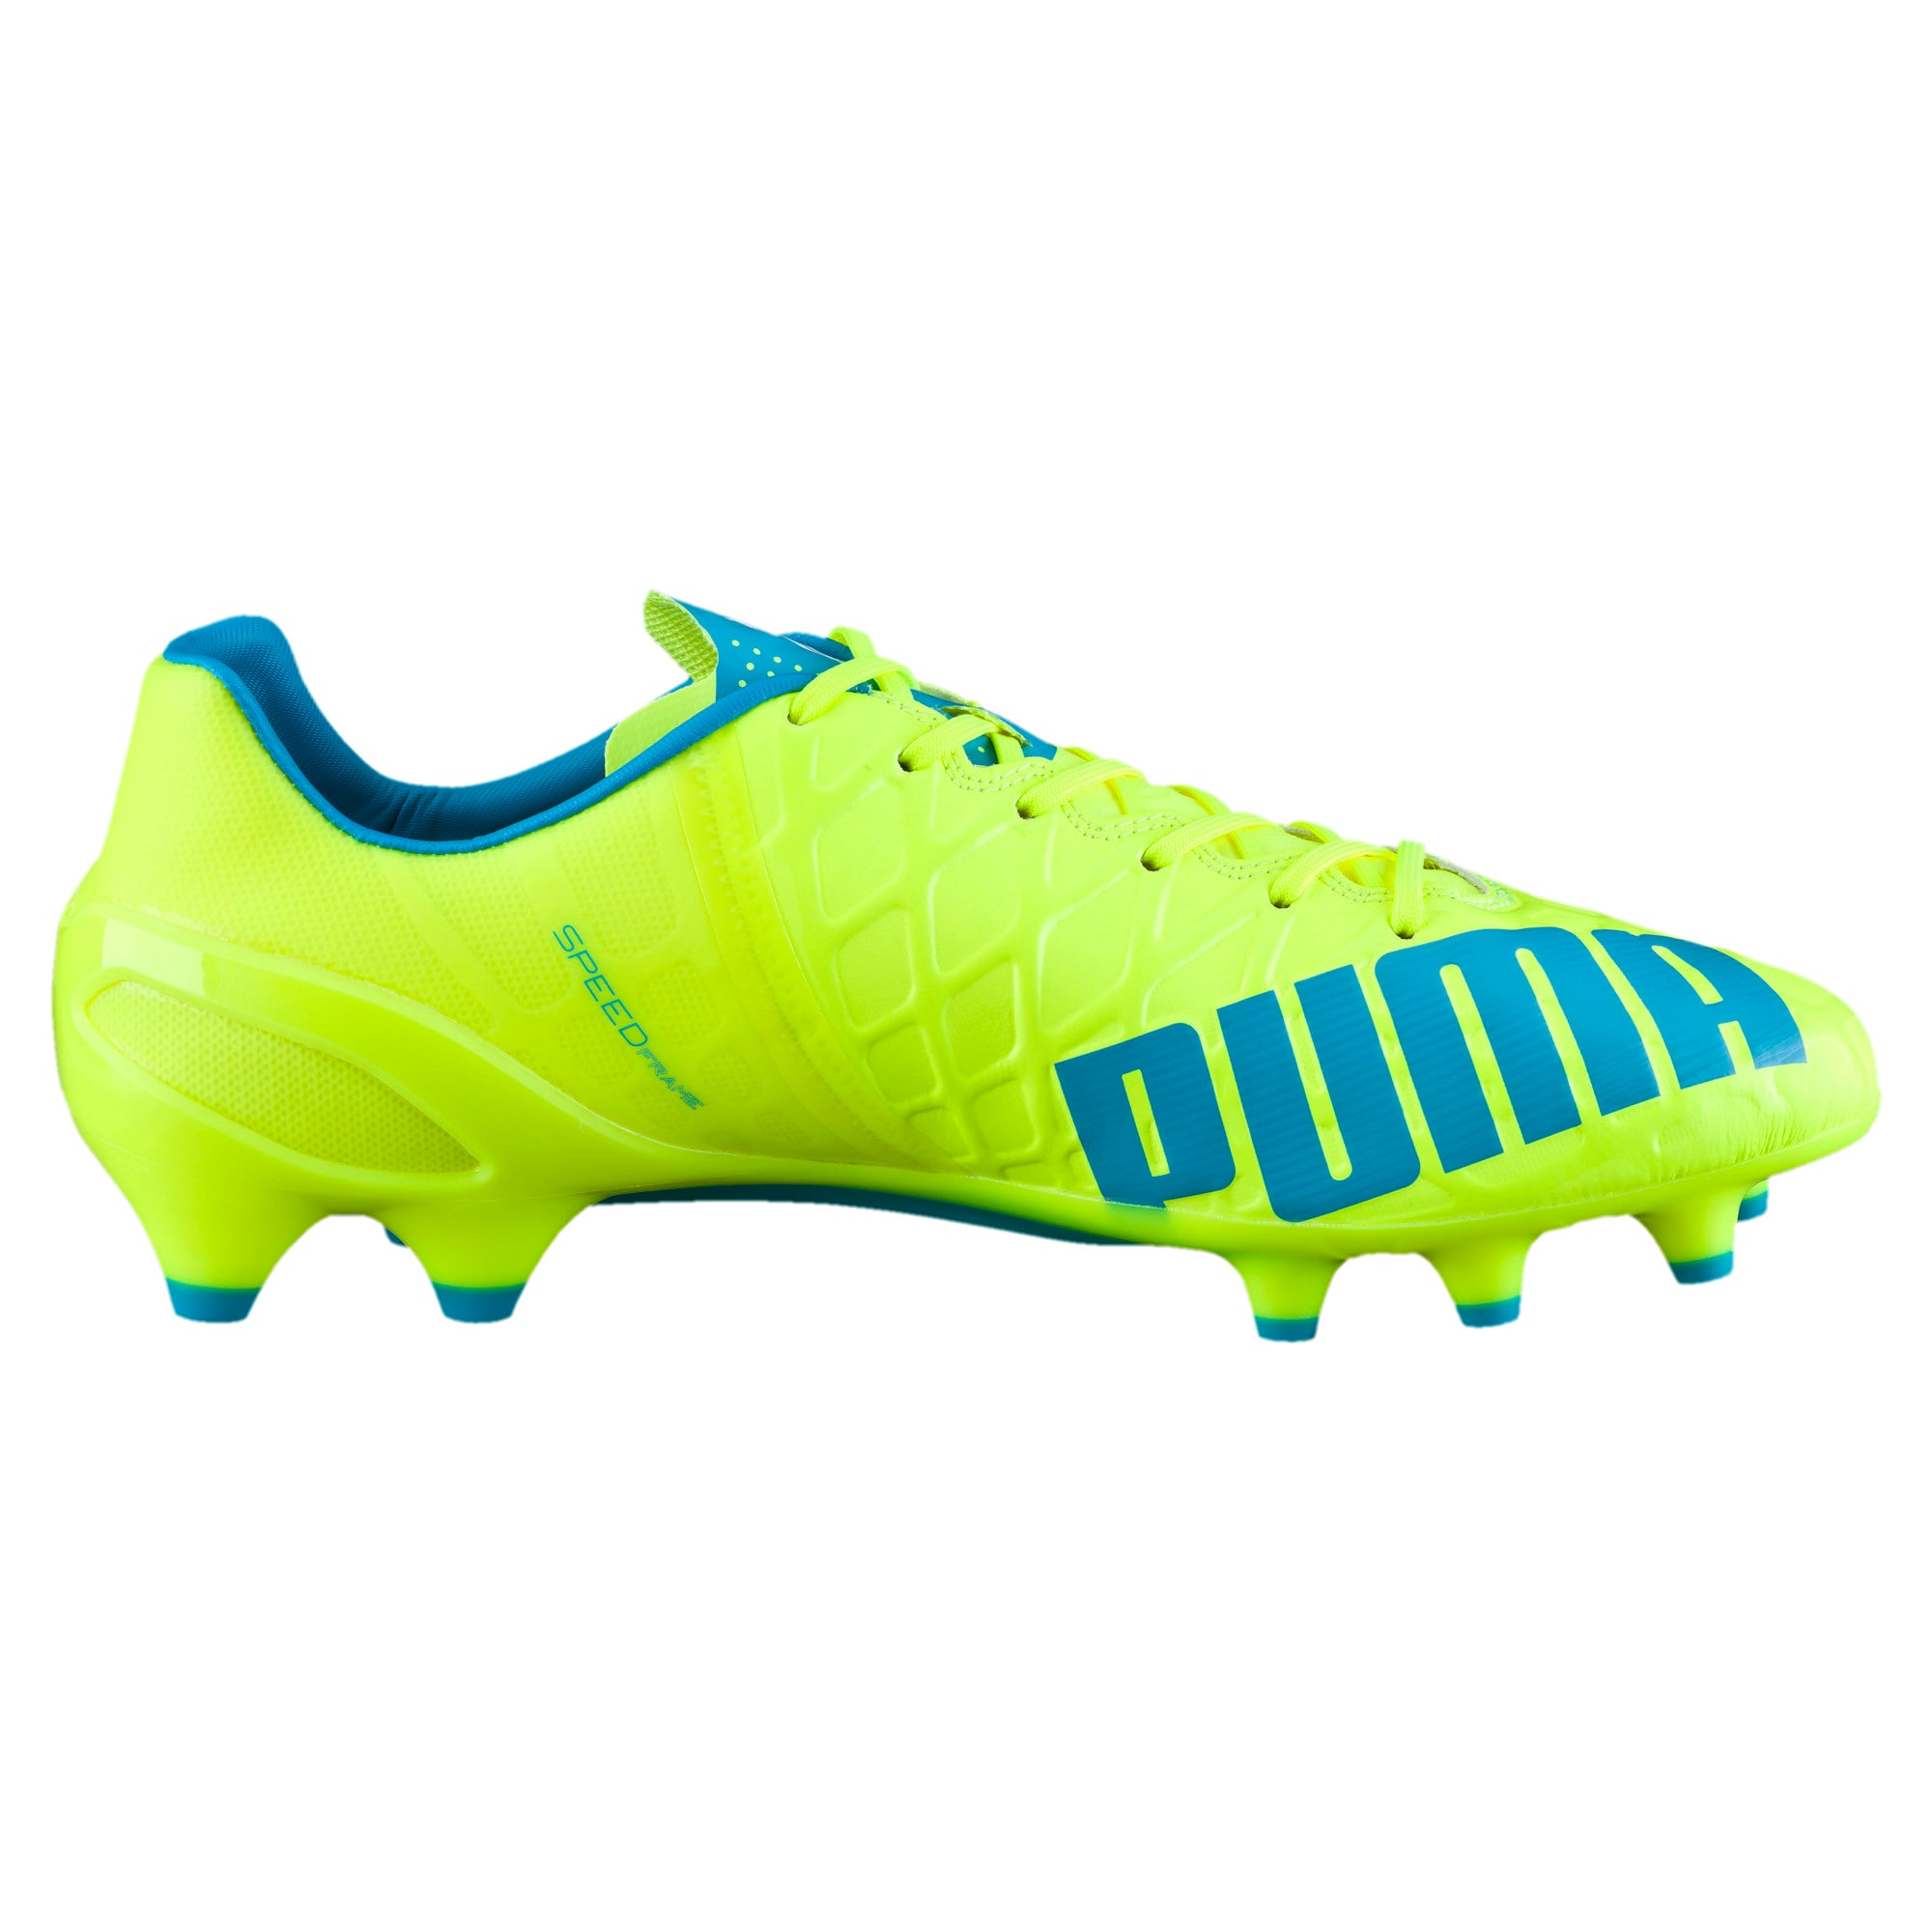 Thumbnail 4 of evoSPEED 1.4 FG Football Boots, yellow-blue-white, medium-IND